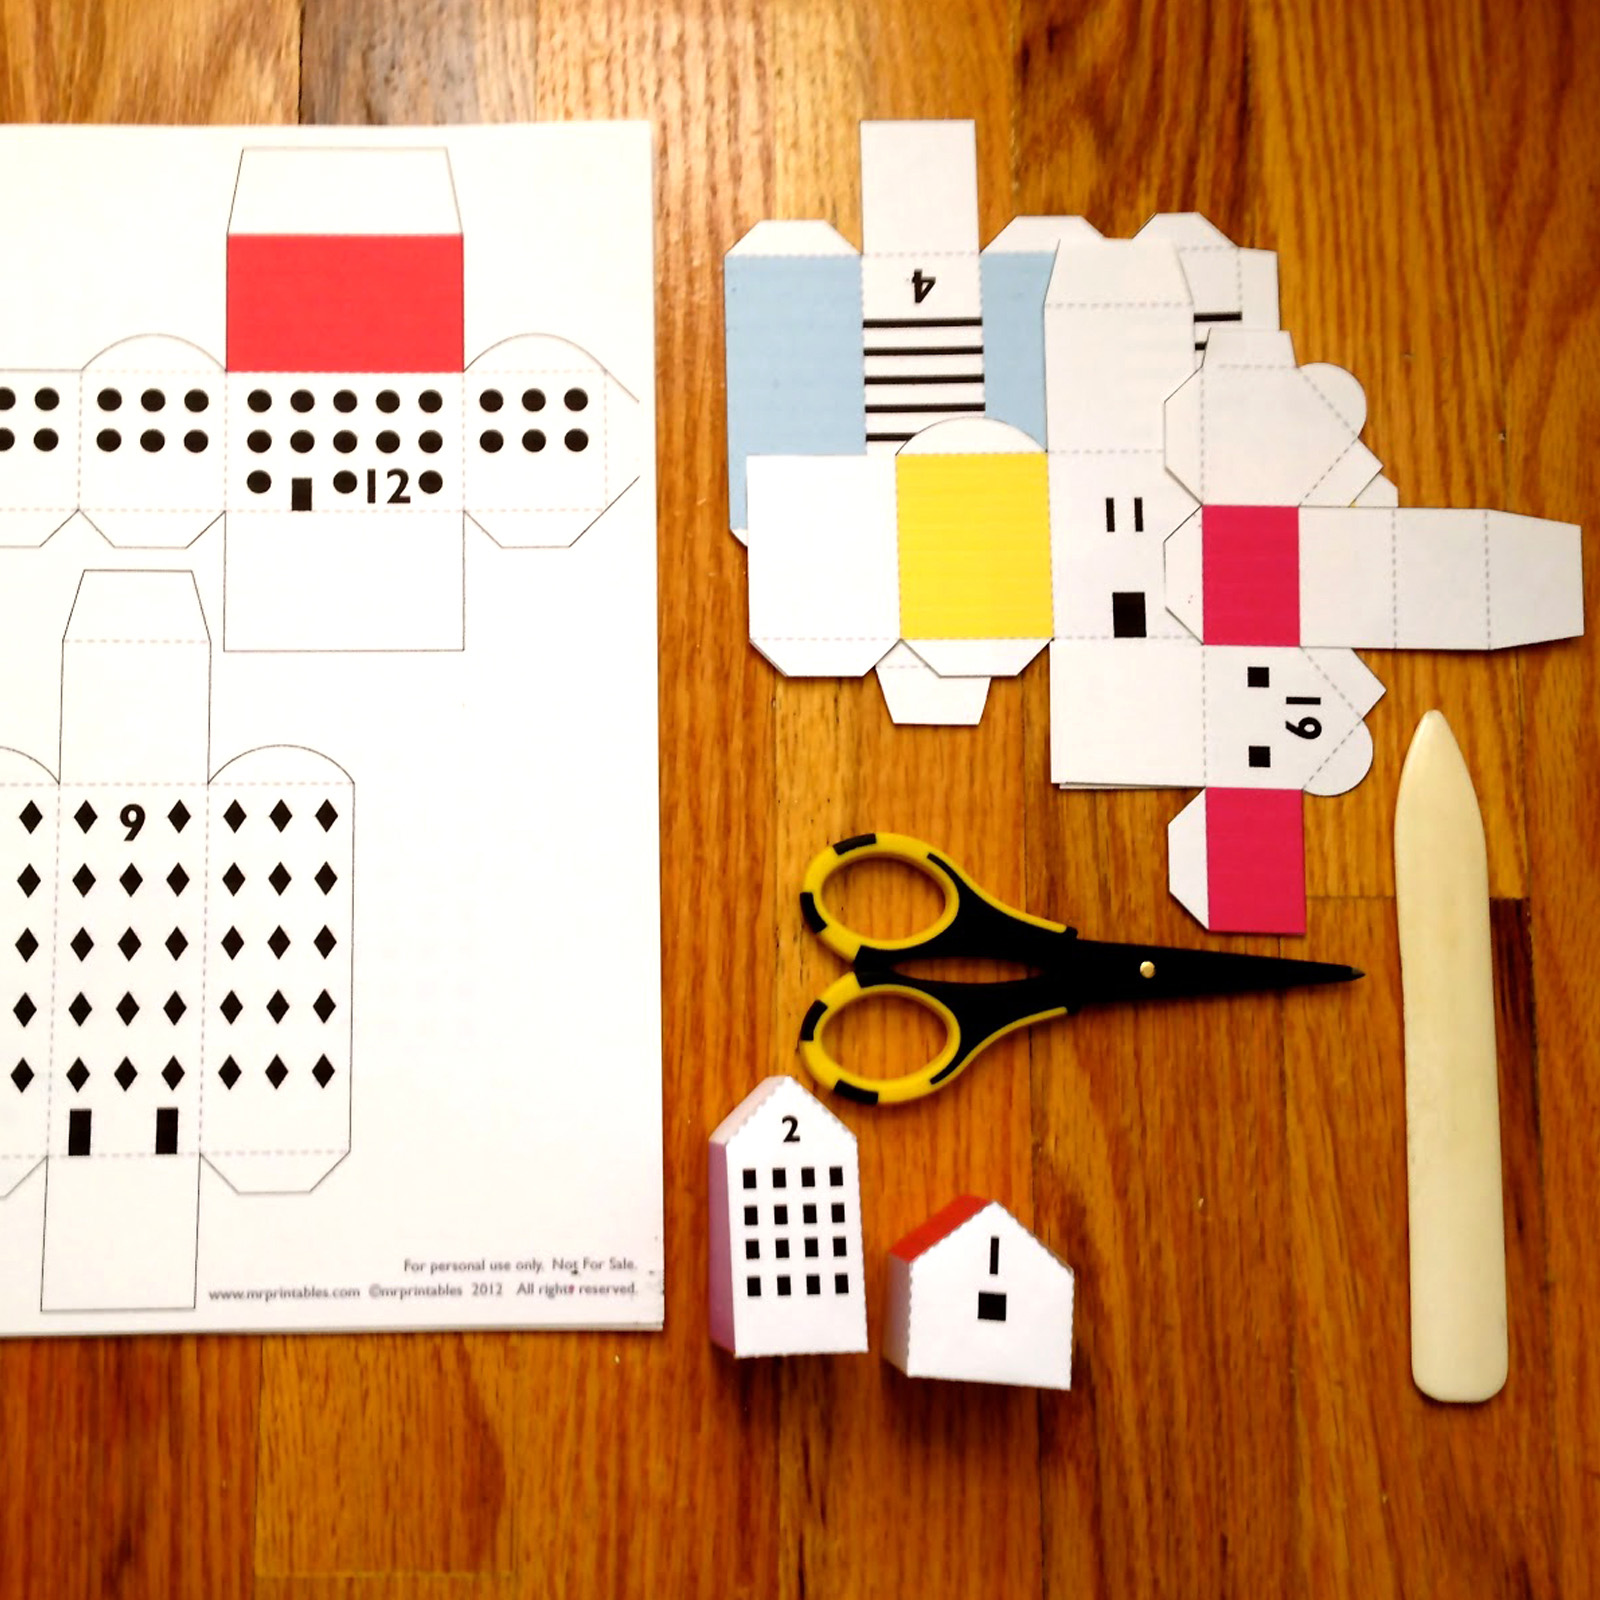 GE_20121115-PAPER-DIY-CRAFT-Here-Comes-Sant-Claus-Advent-Calendar_2